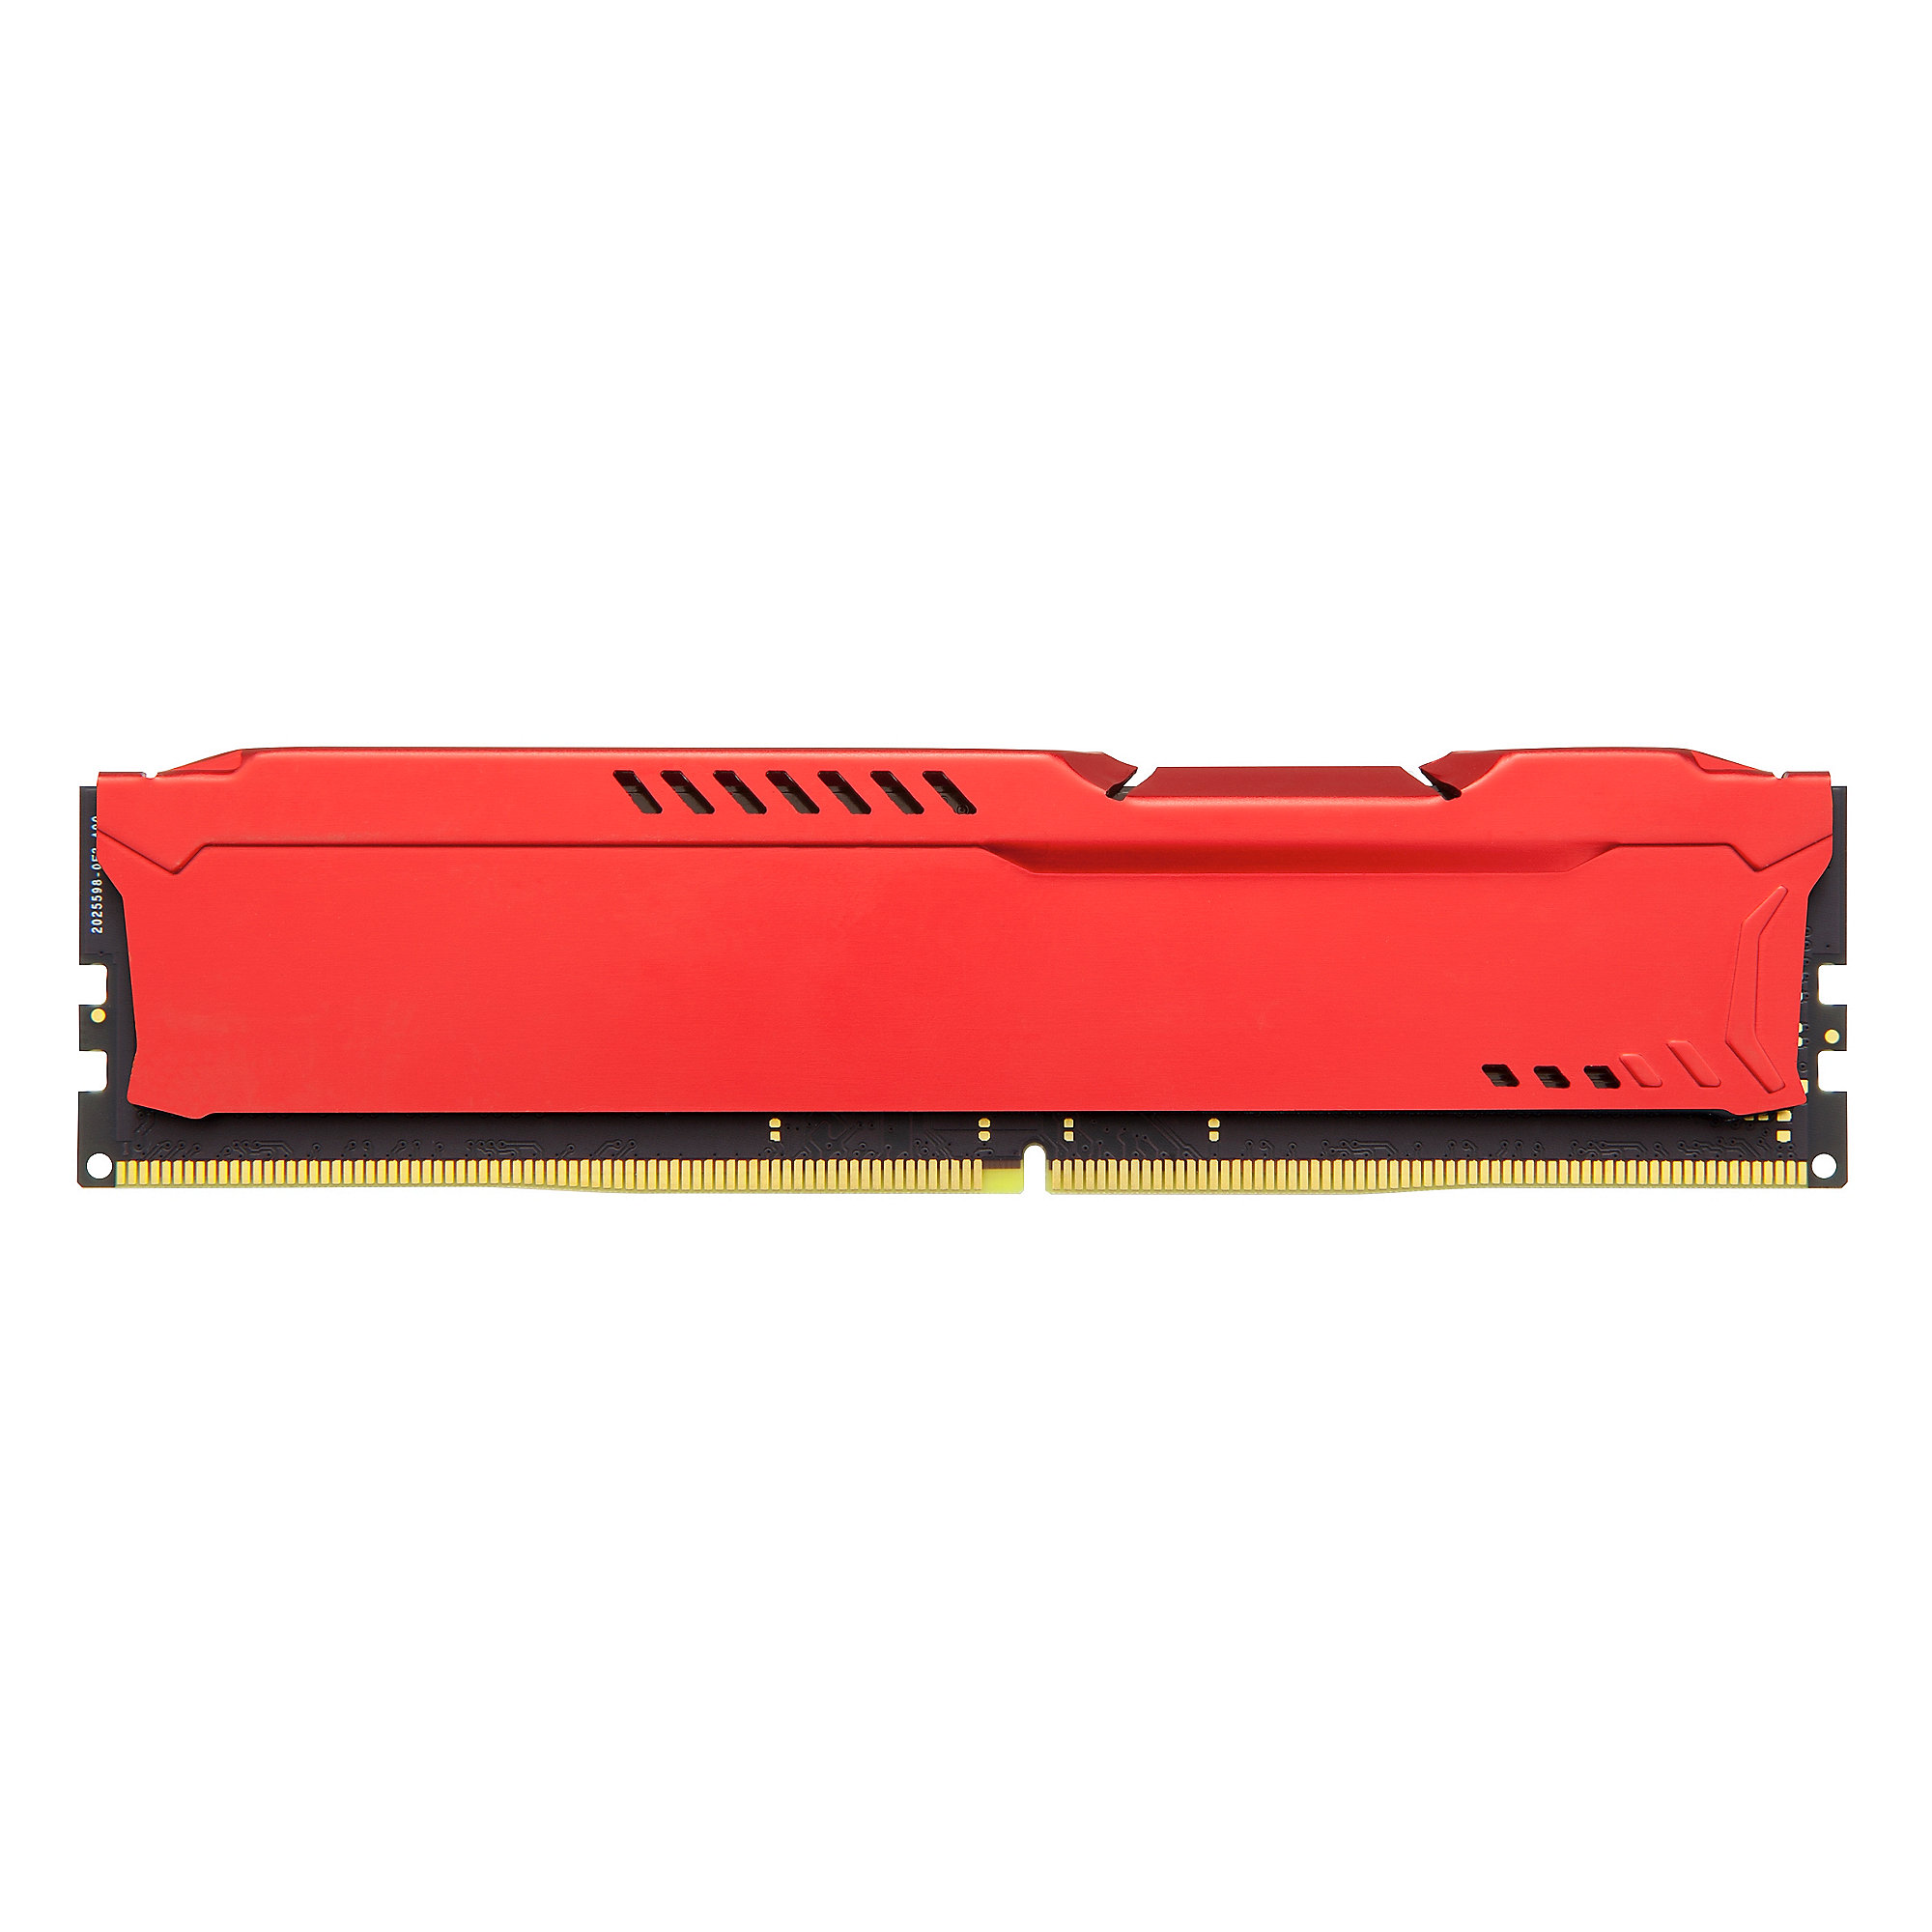 32GB (4x8GB) HyperX Fury rot DDR4-2133 CL14 RAM Kit